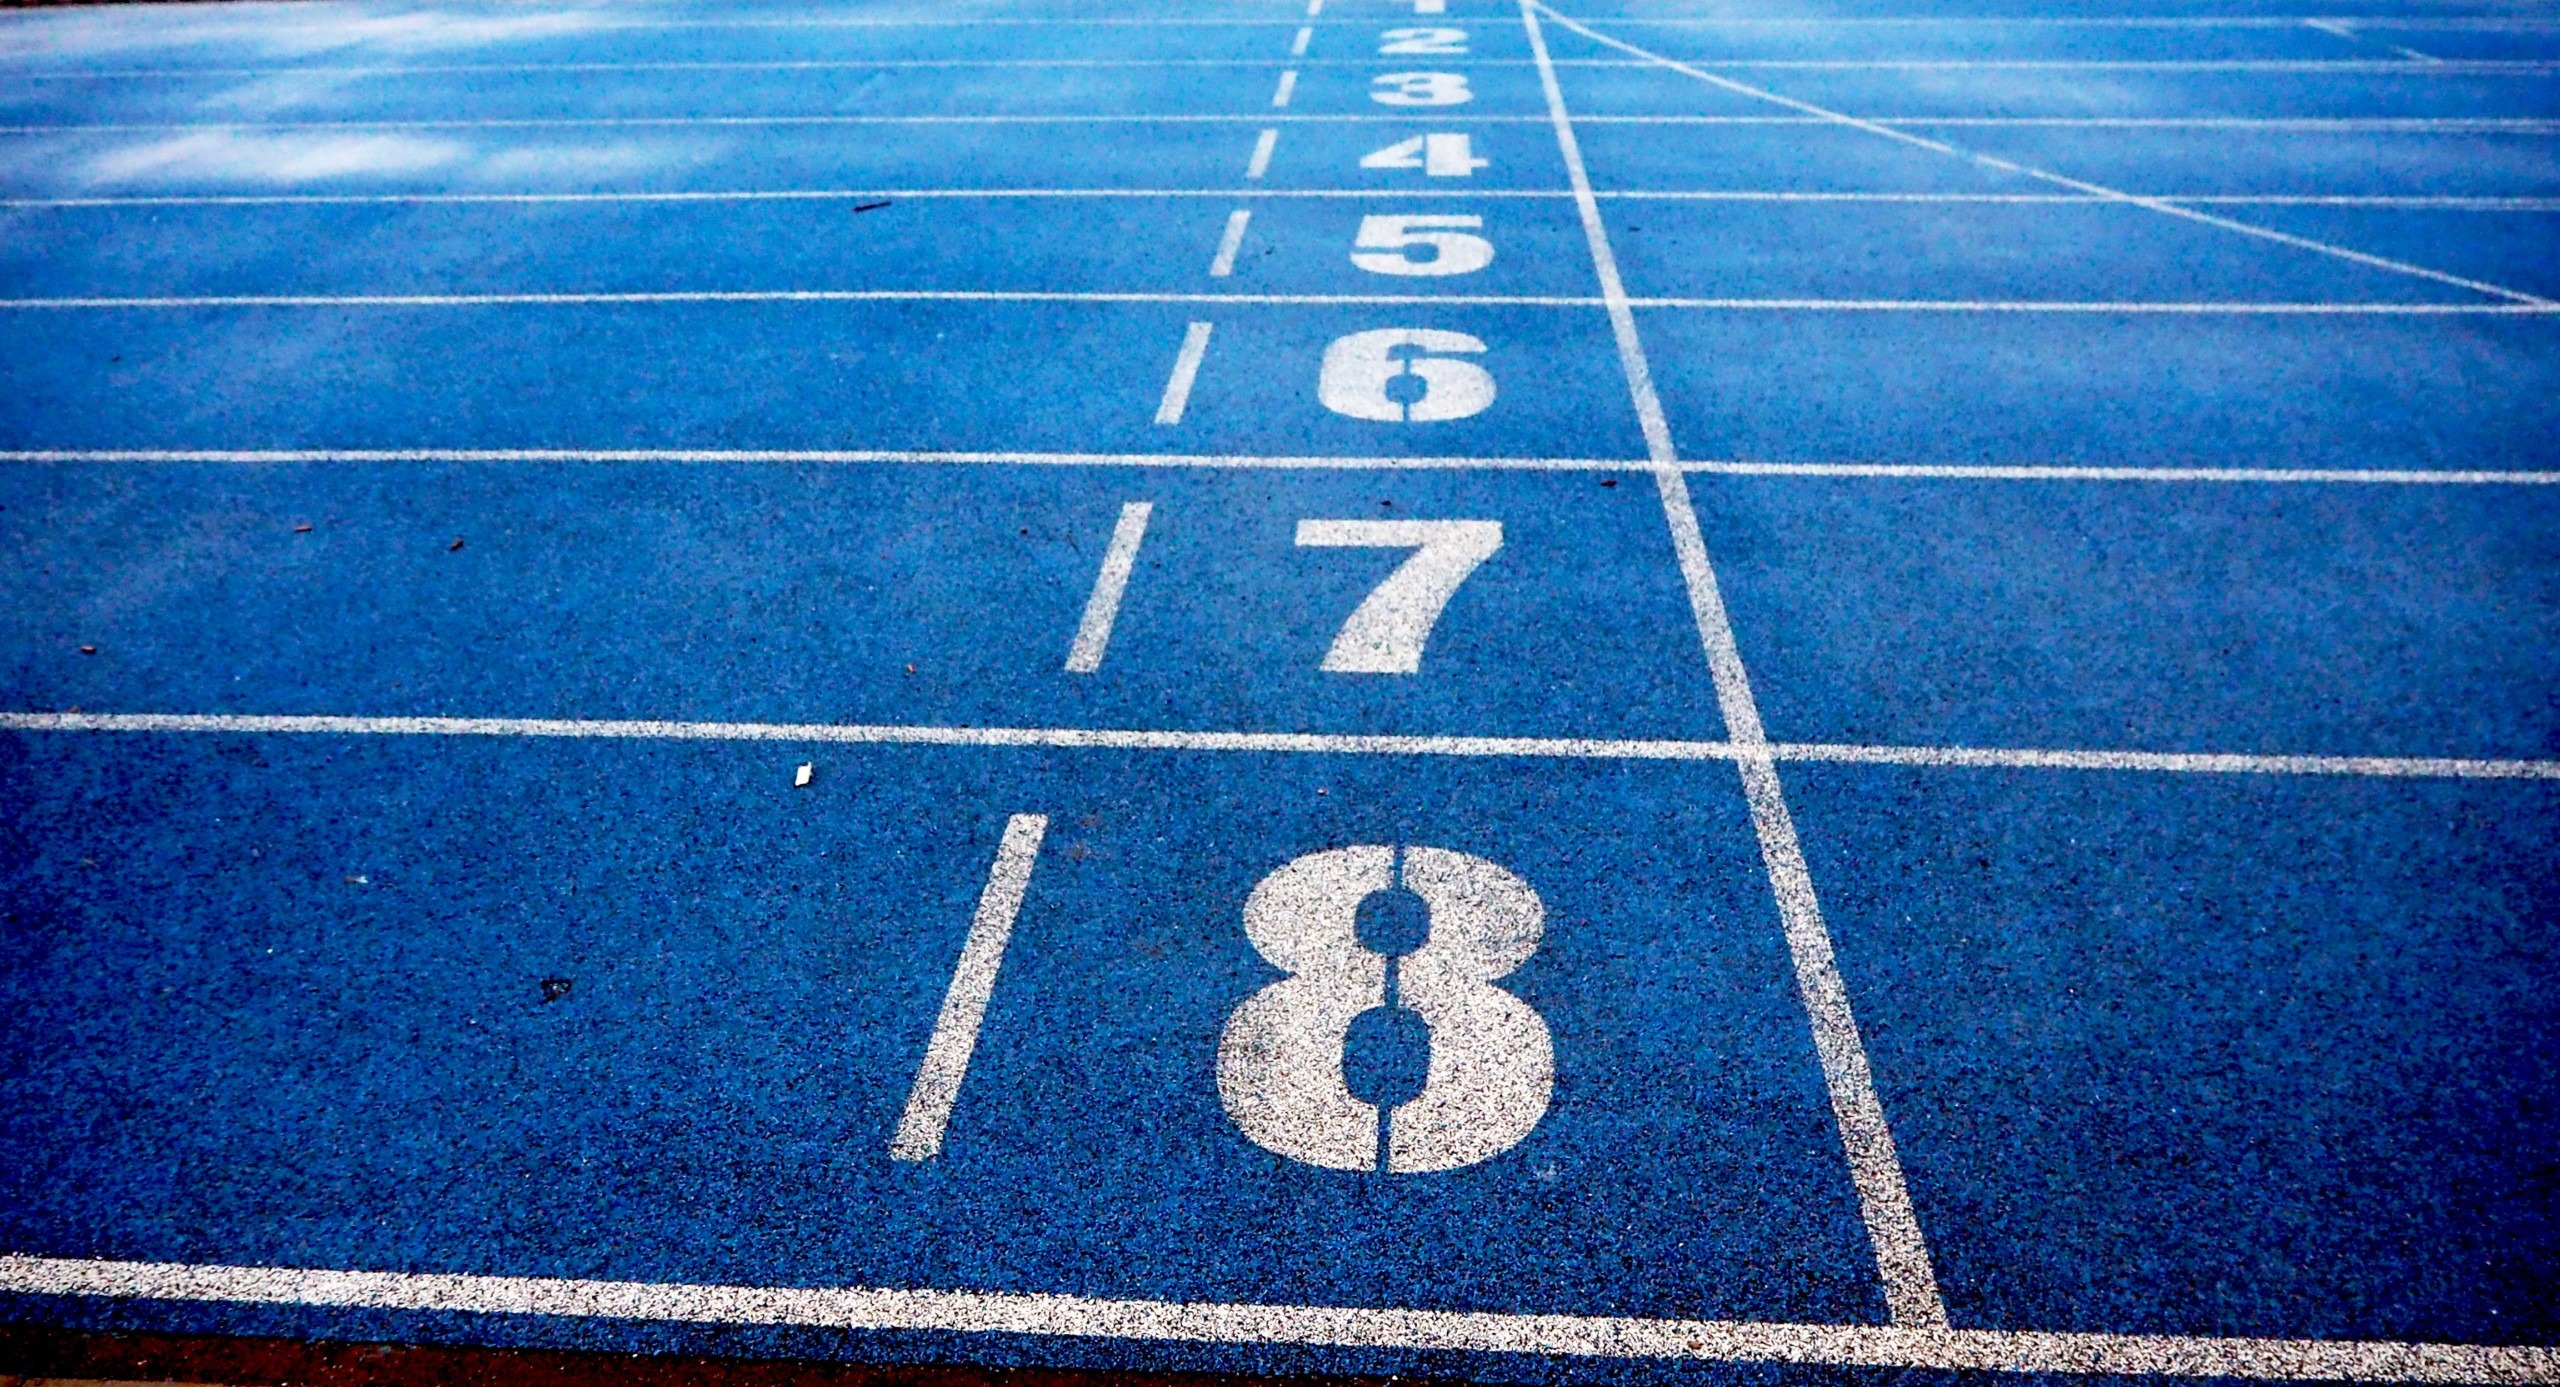 Picture of an indoor running track